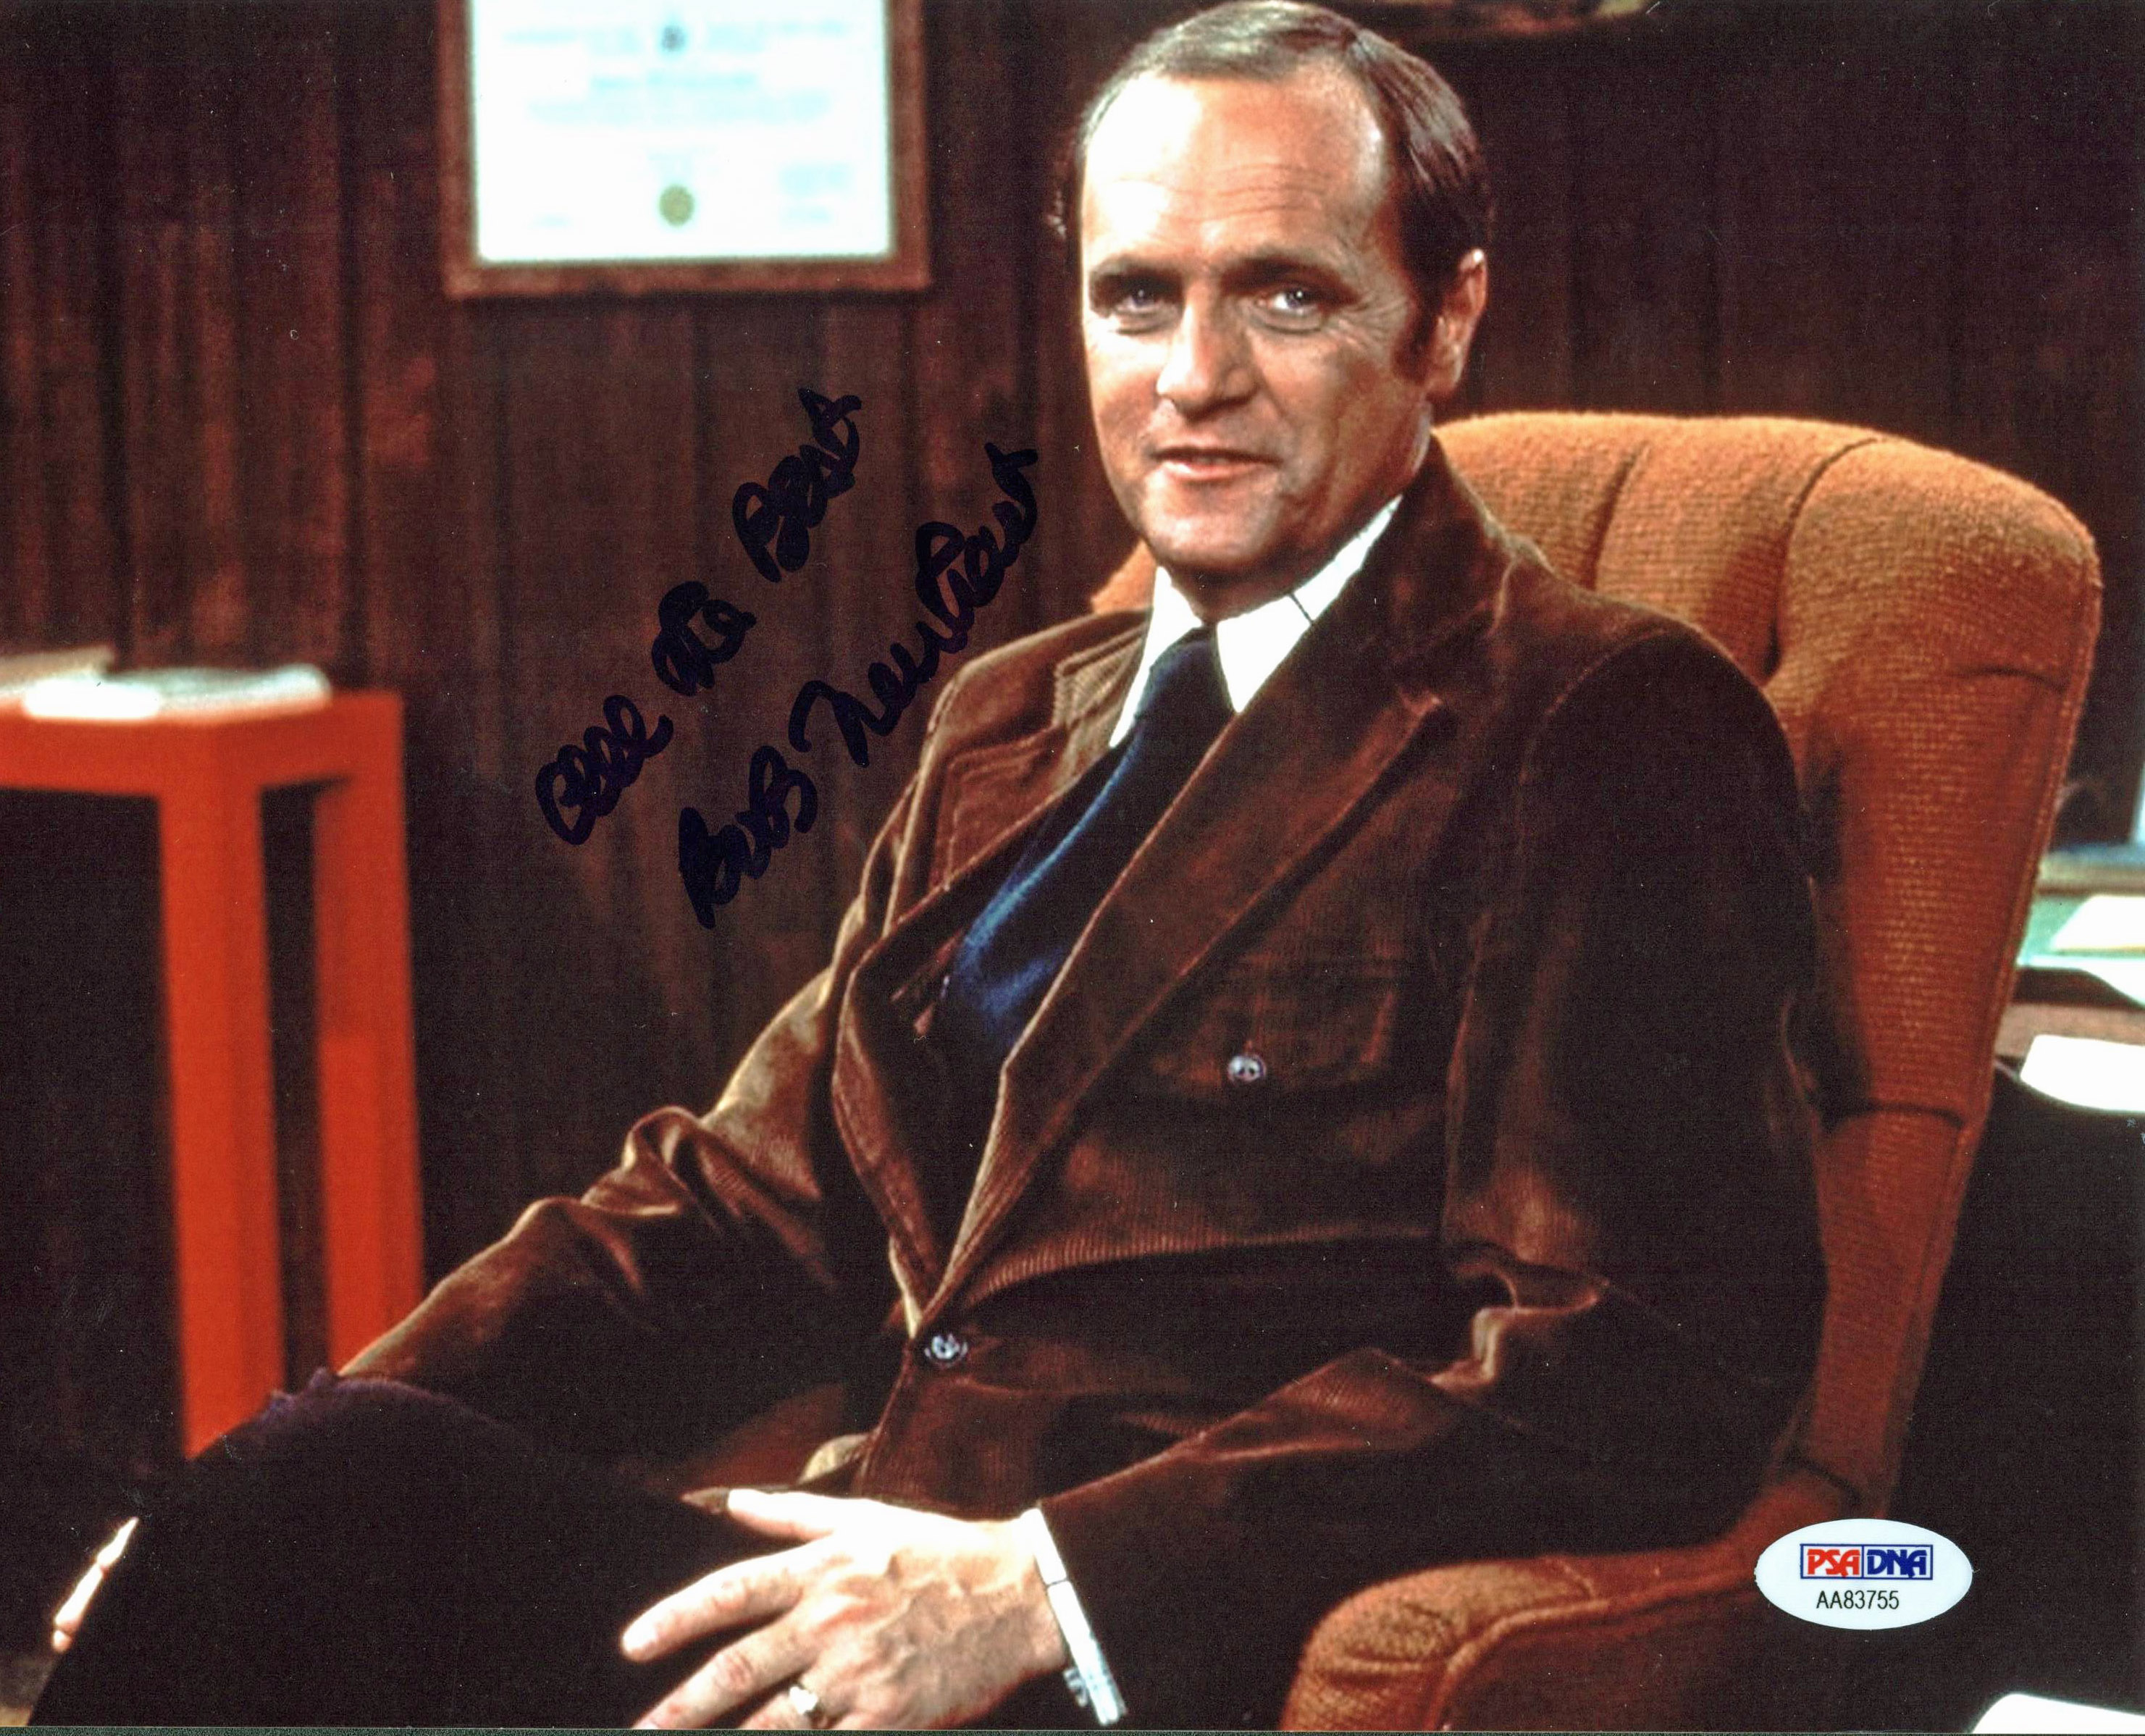 Bob Newhart The Bob Newhart Show Authentic Signed 8x10 Photo PSA/DNA #AA83755